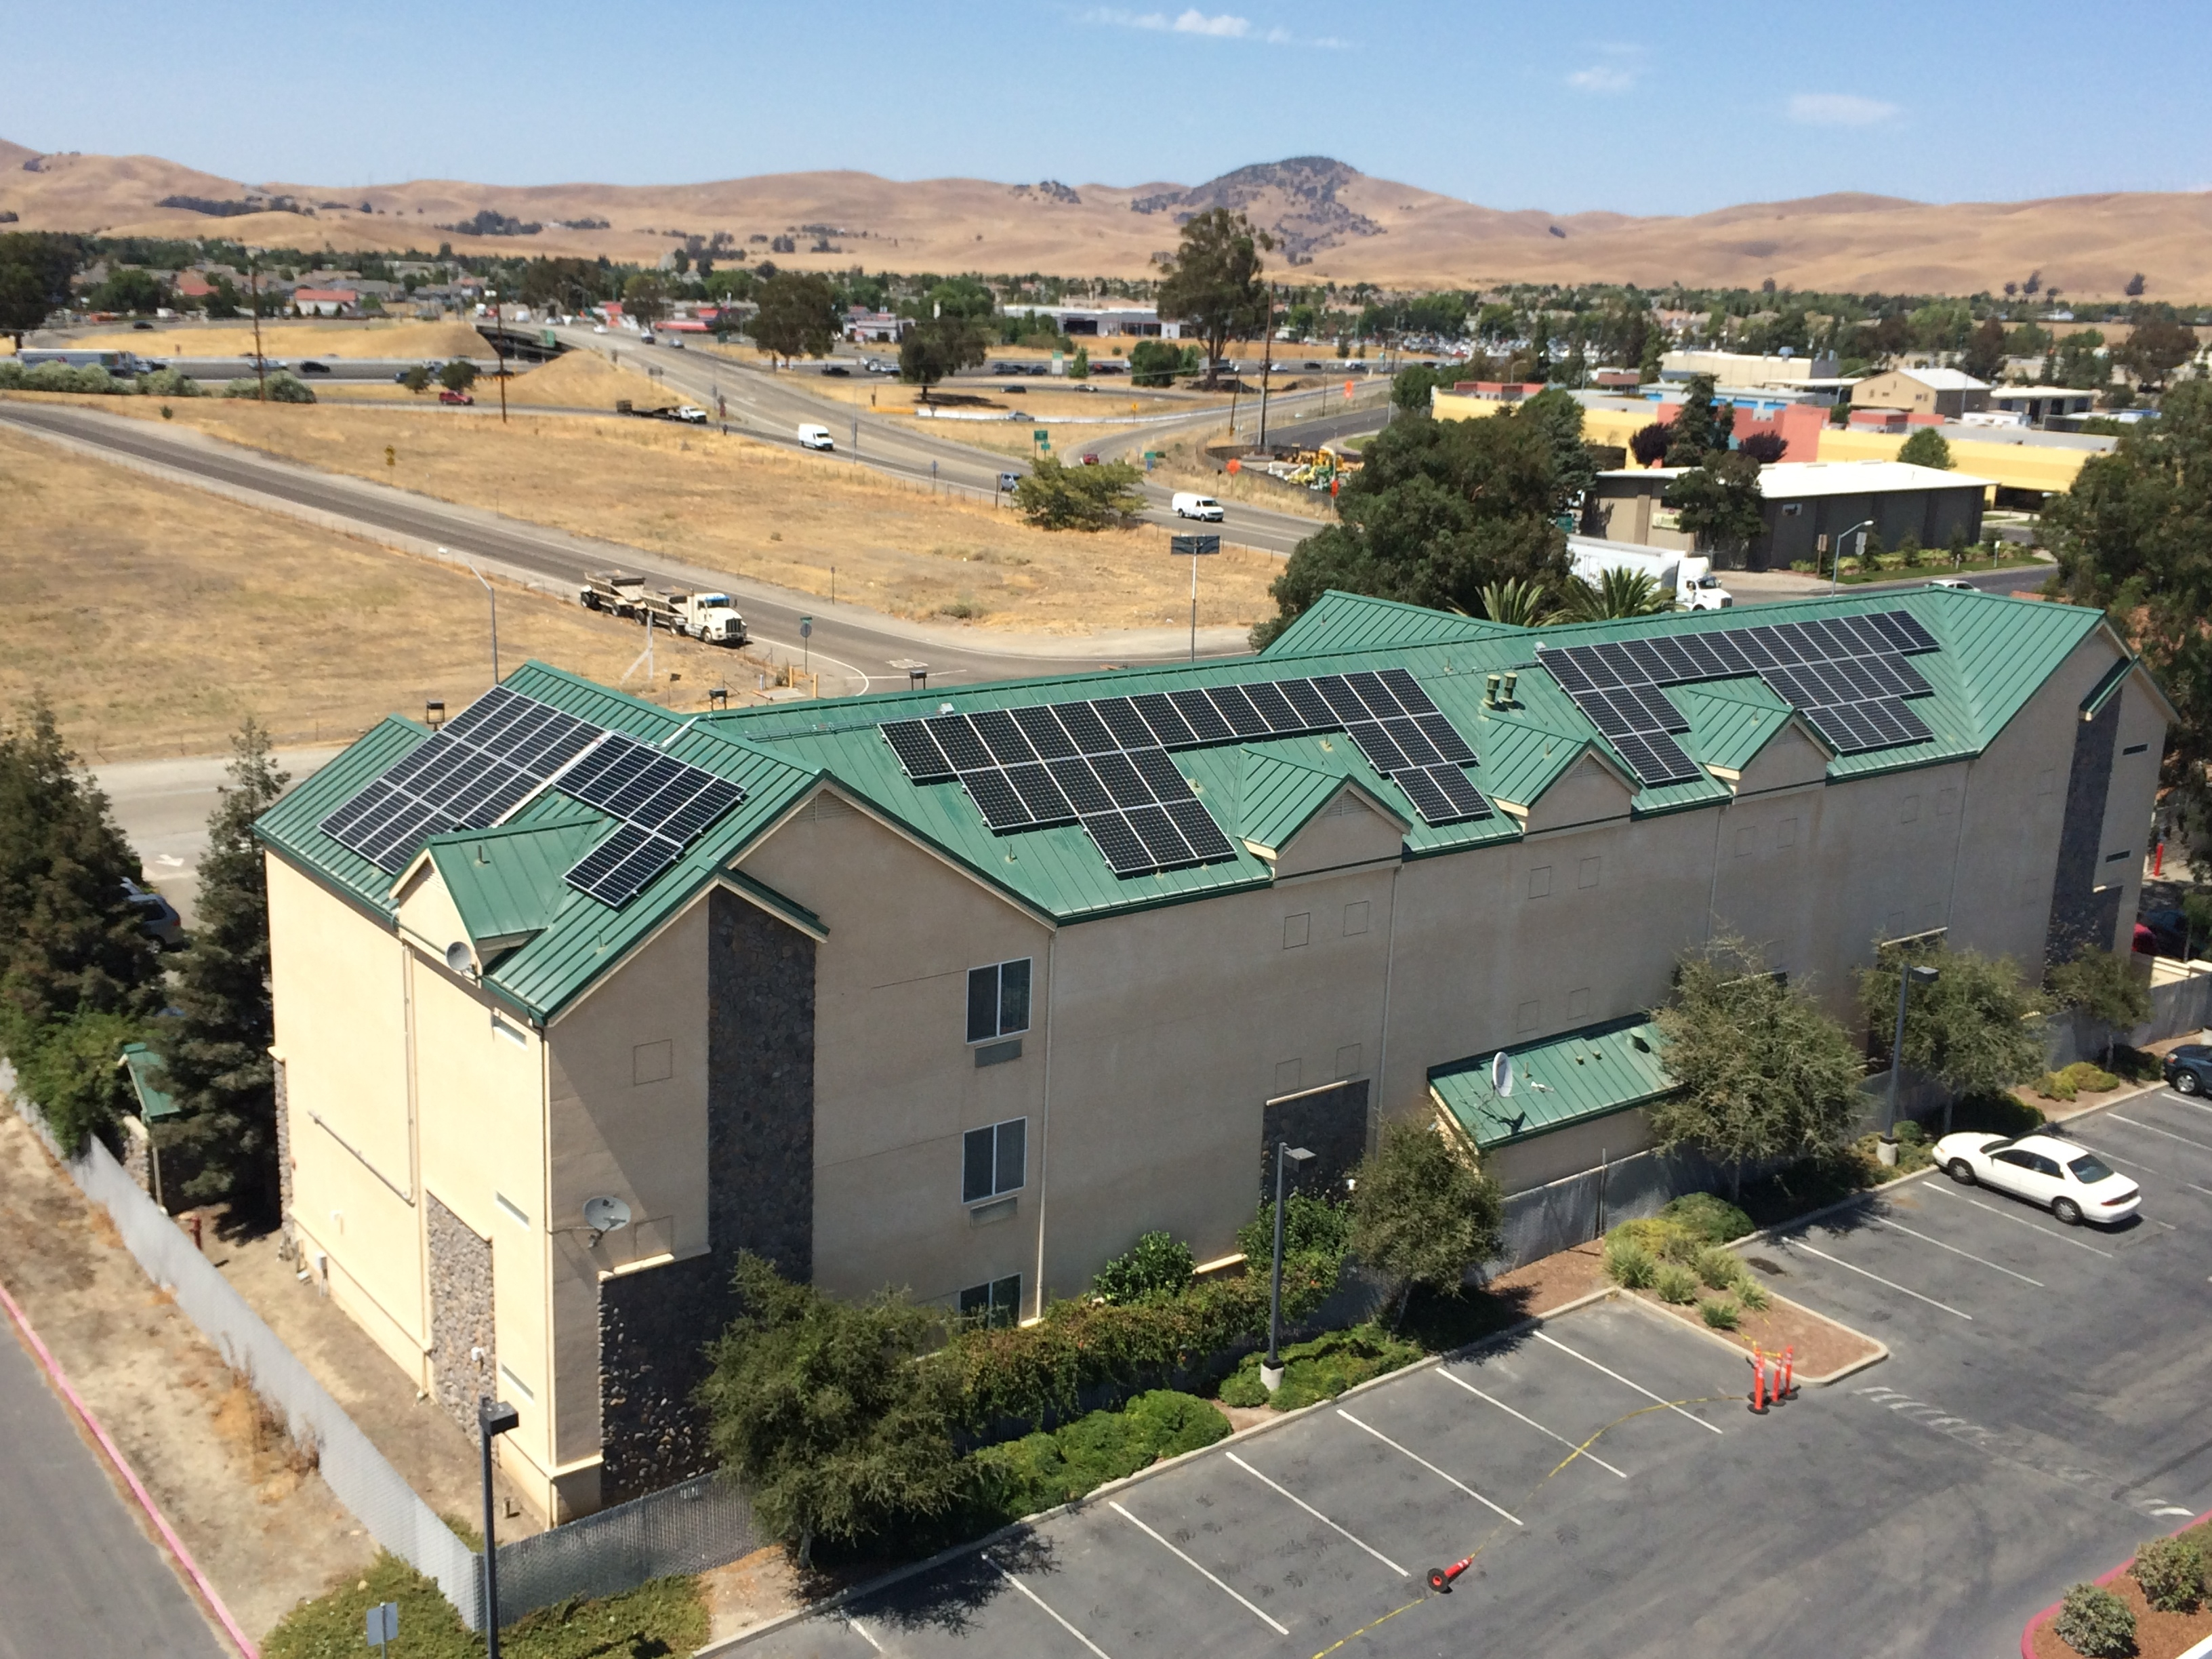 Quality Inn and Suites Solar installation